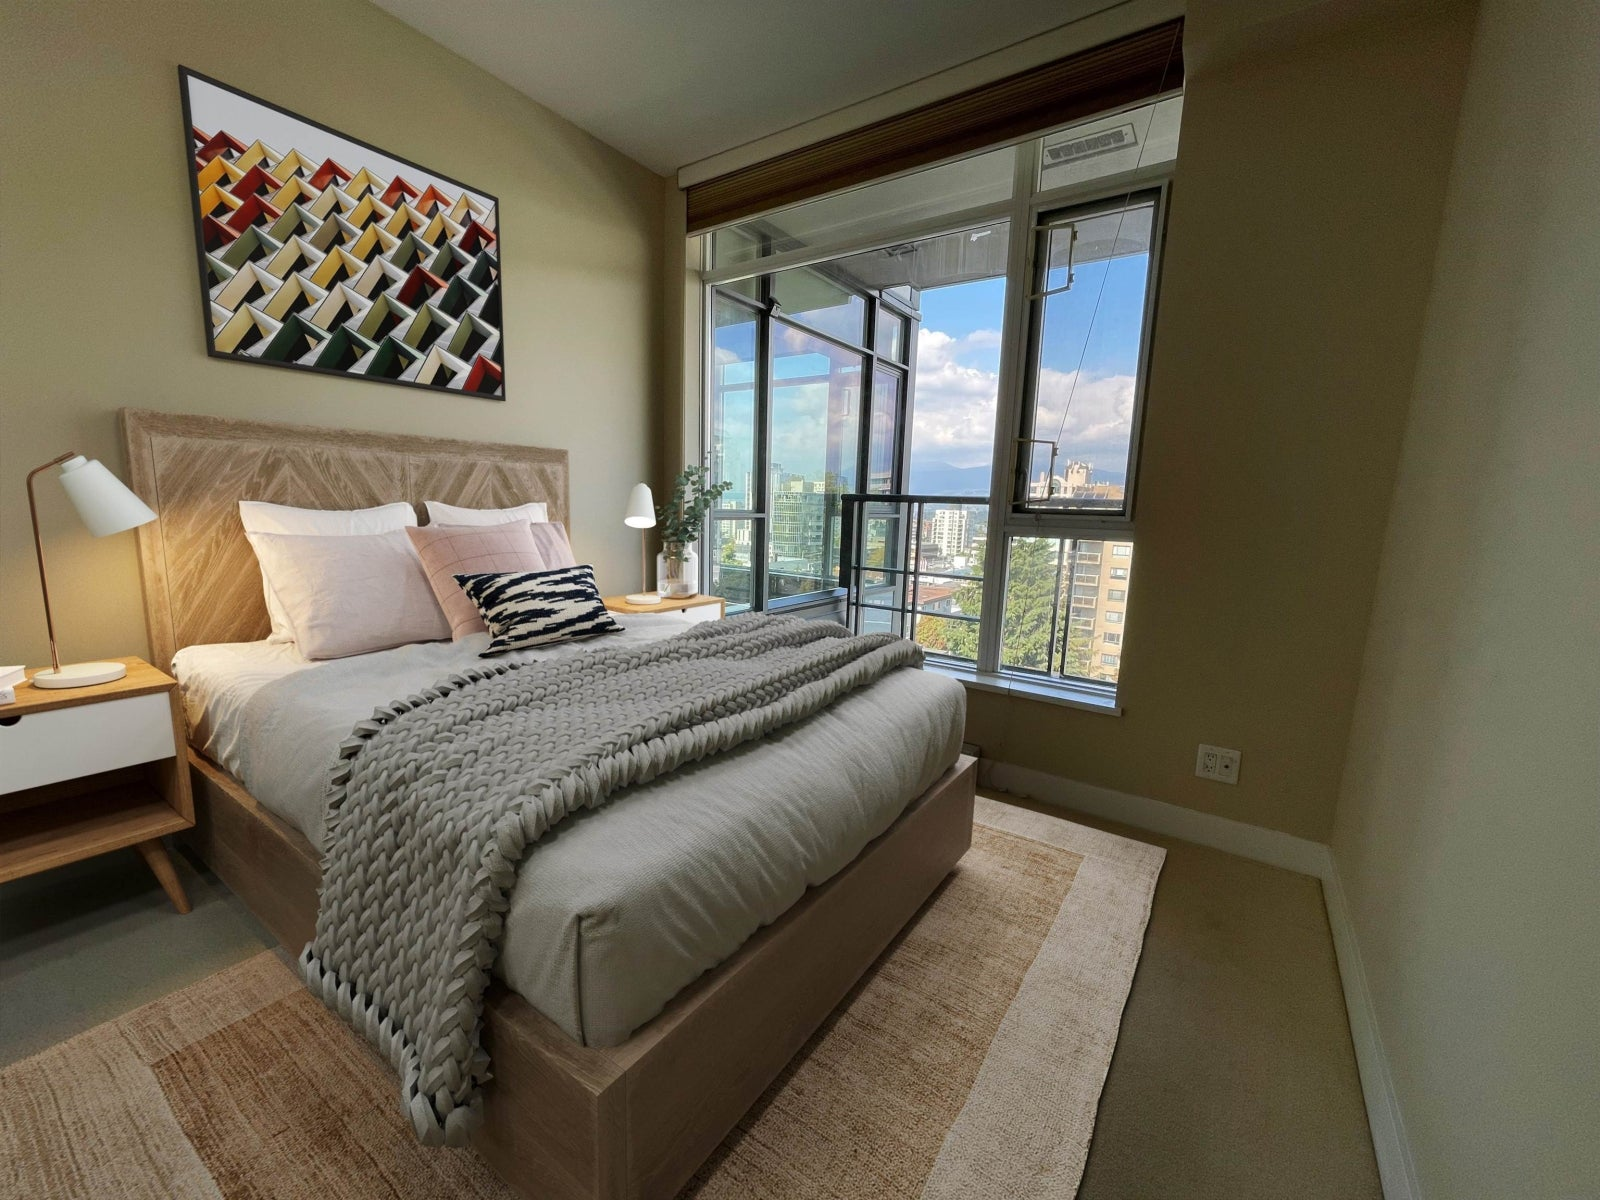 803 1333 W 11TH AVENUE - Fairview VW Apartment/Condo for sale, 2 Bedrooms (R2616288) #25